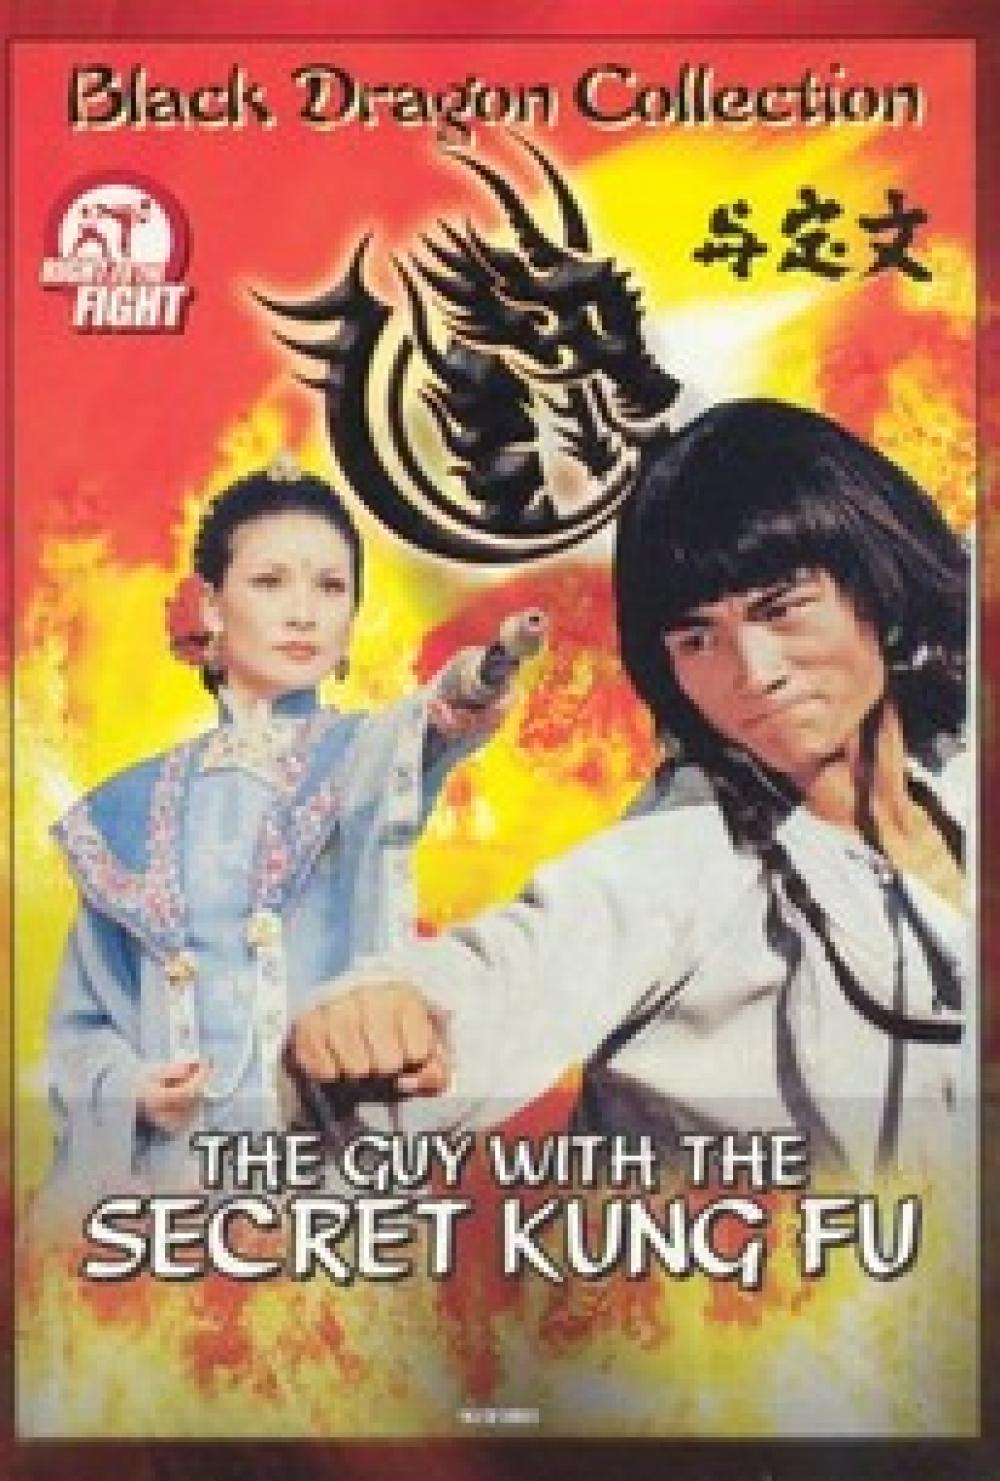 The Guy With The Secret Kung Fu